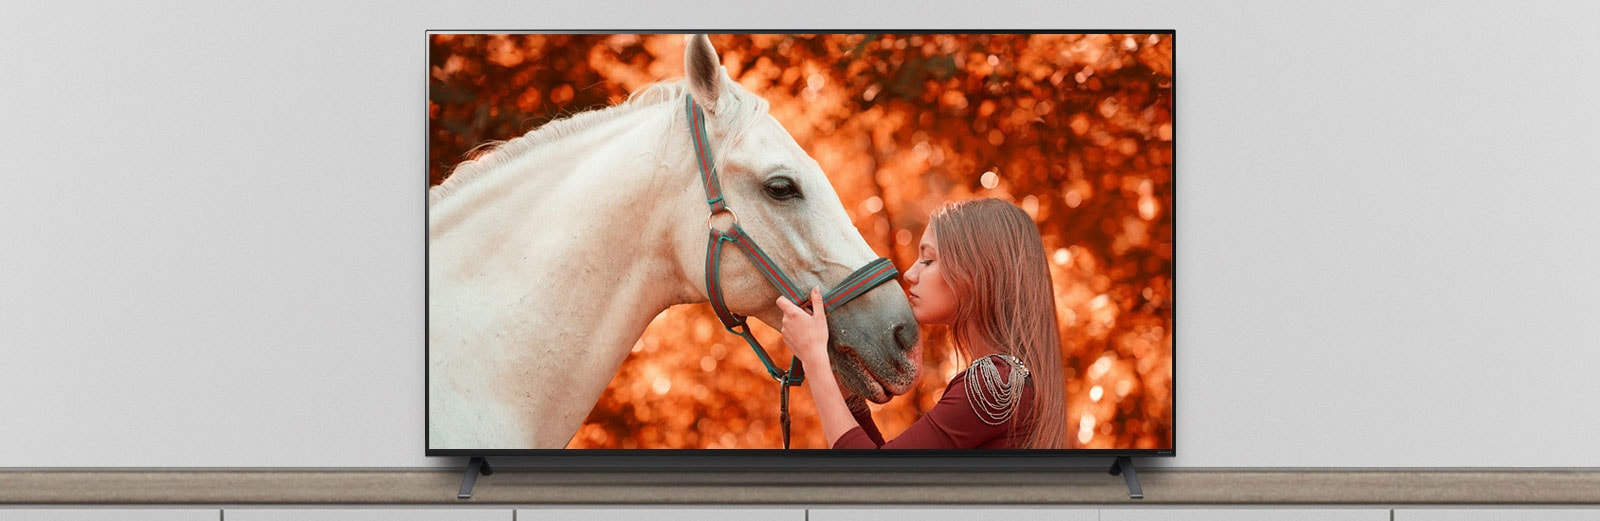 The TV is on the stand, and the screen shows a scene of a movie featuring a horse and a woman.